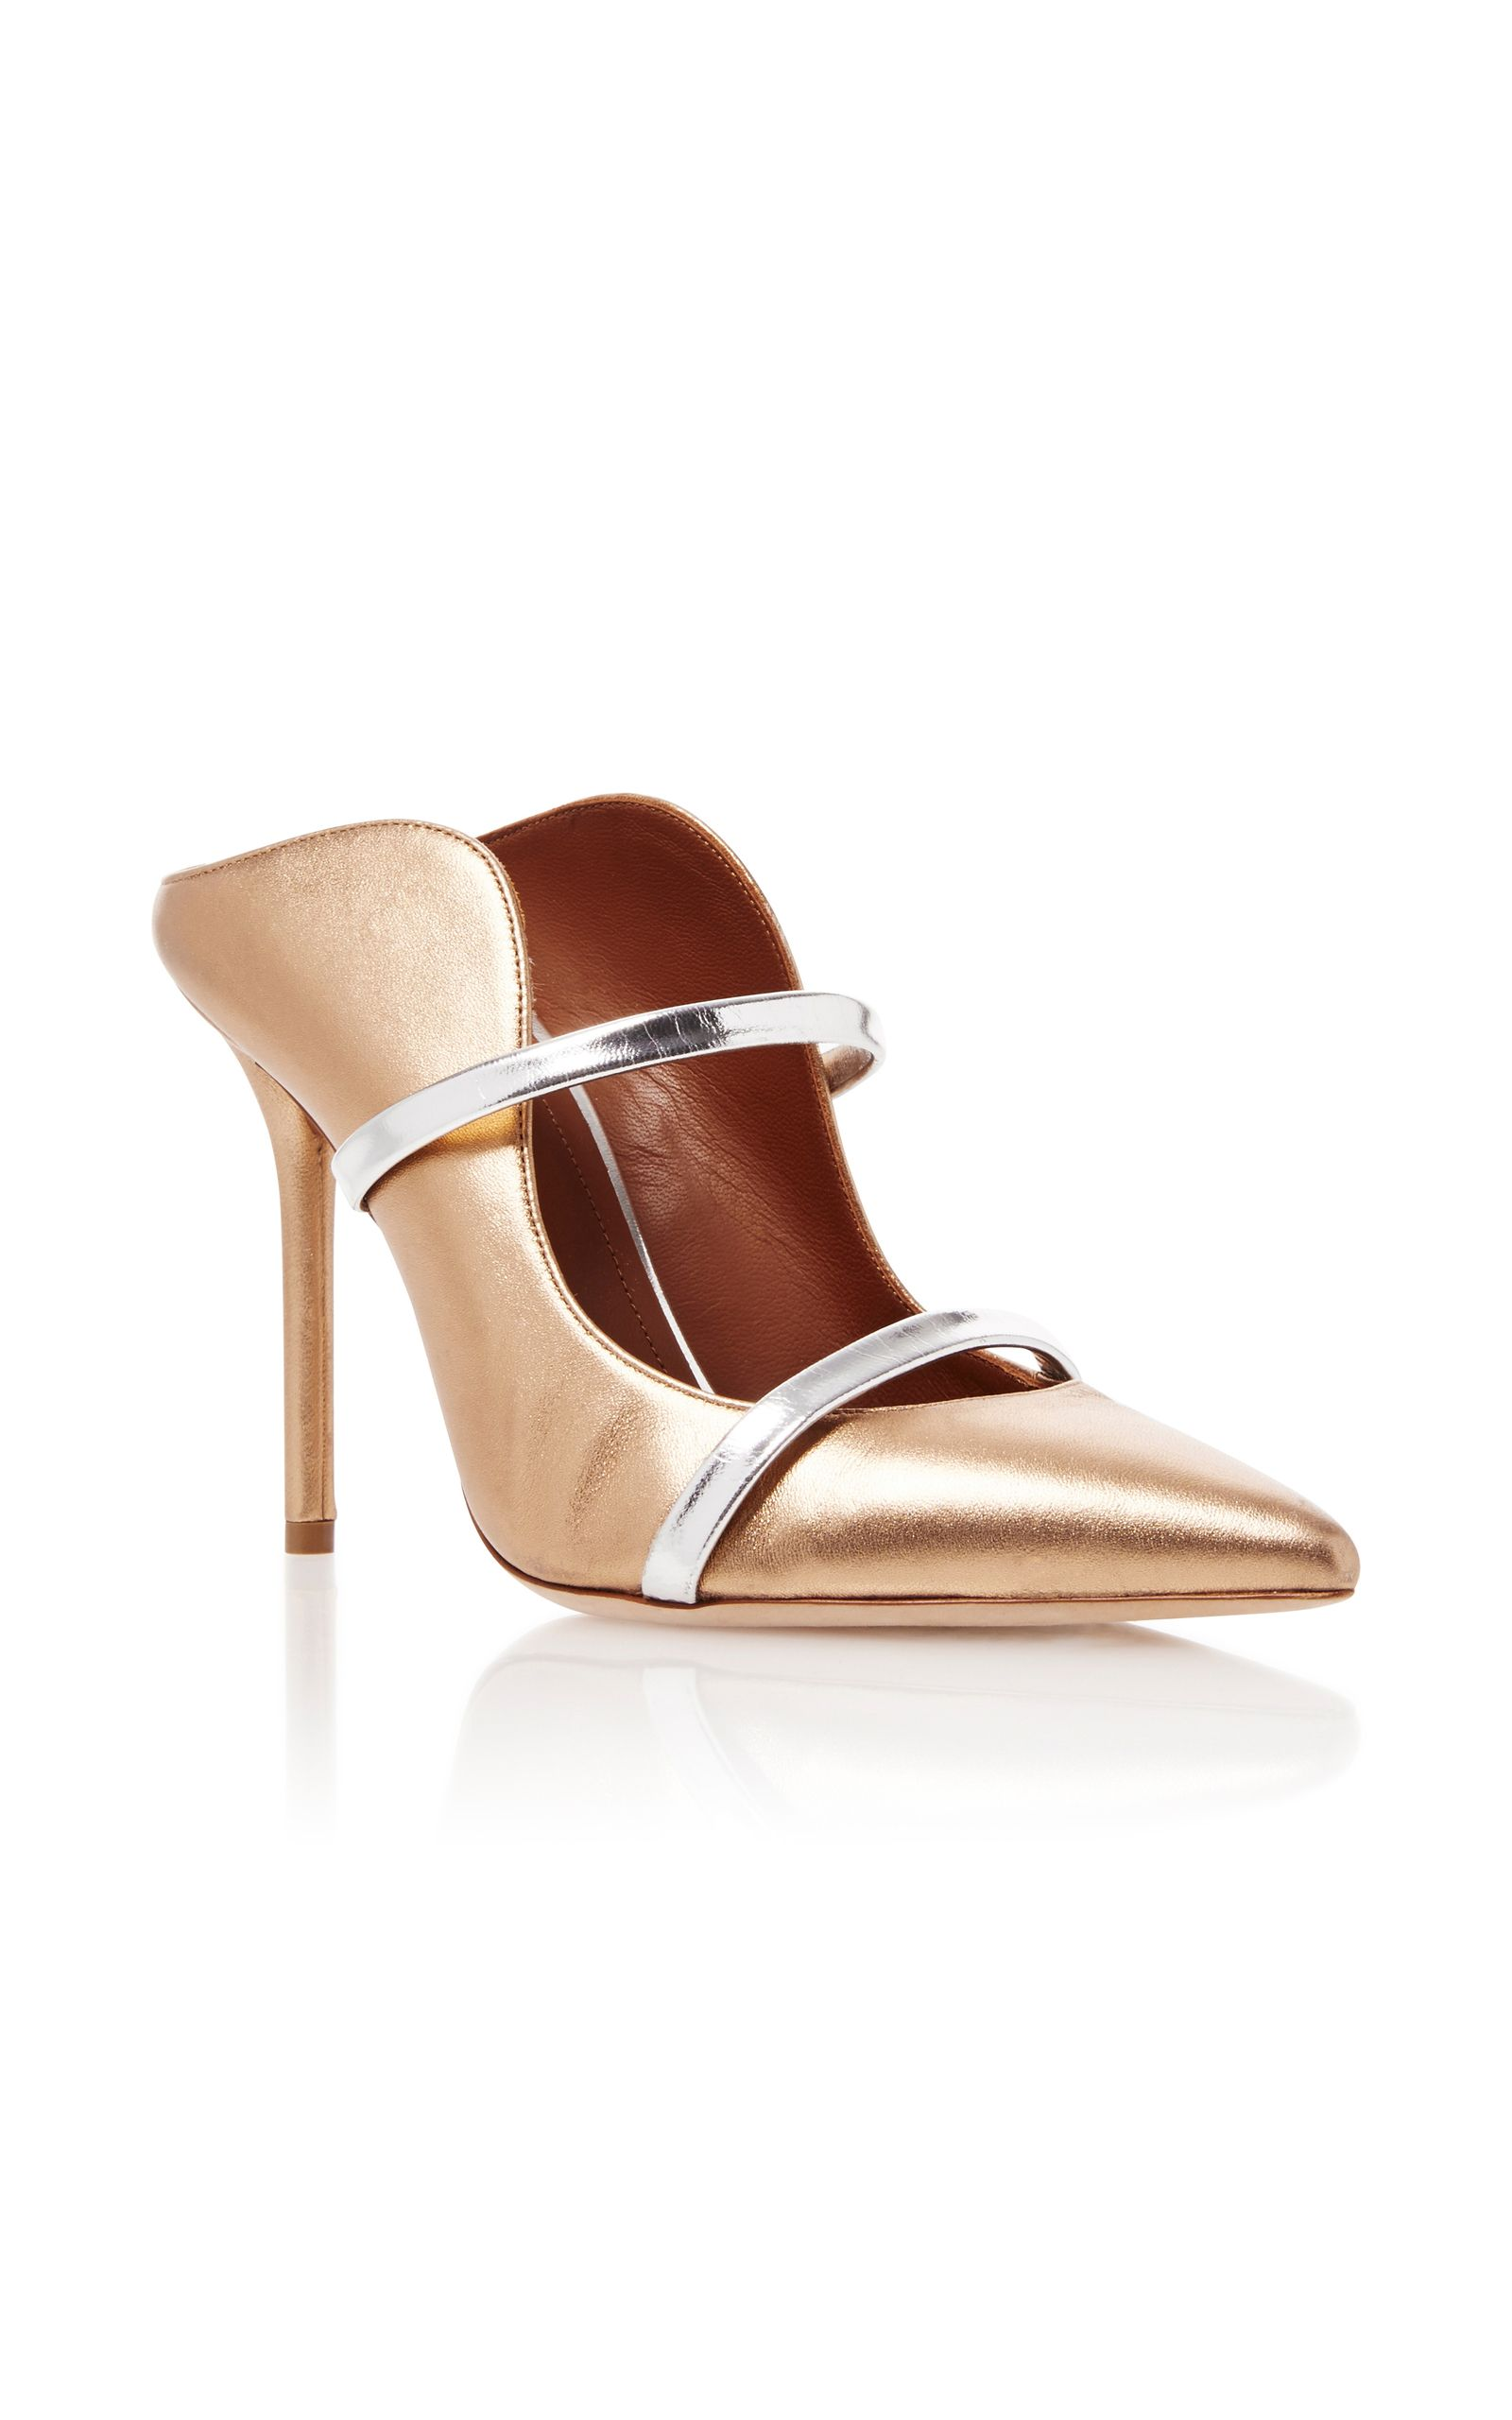 Leather mules, Gold leather, Leather pumps